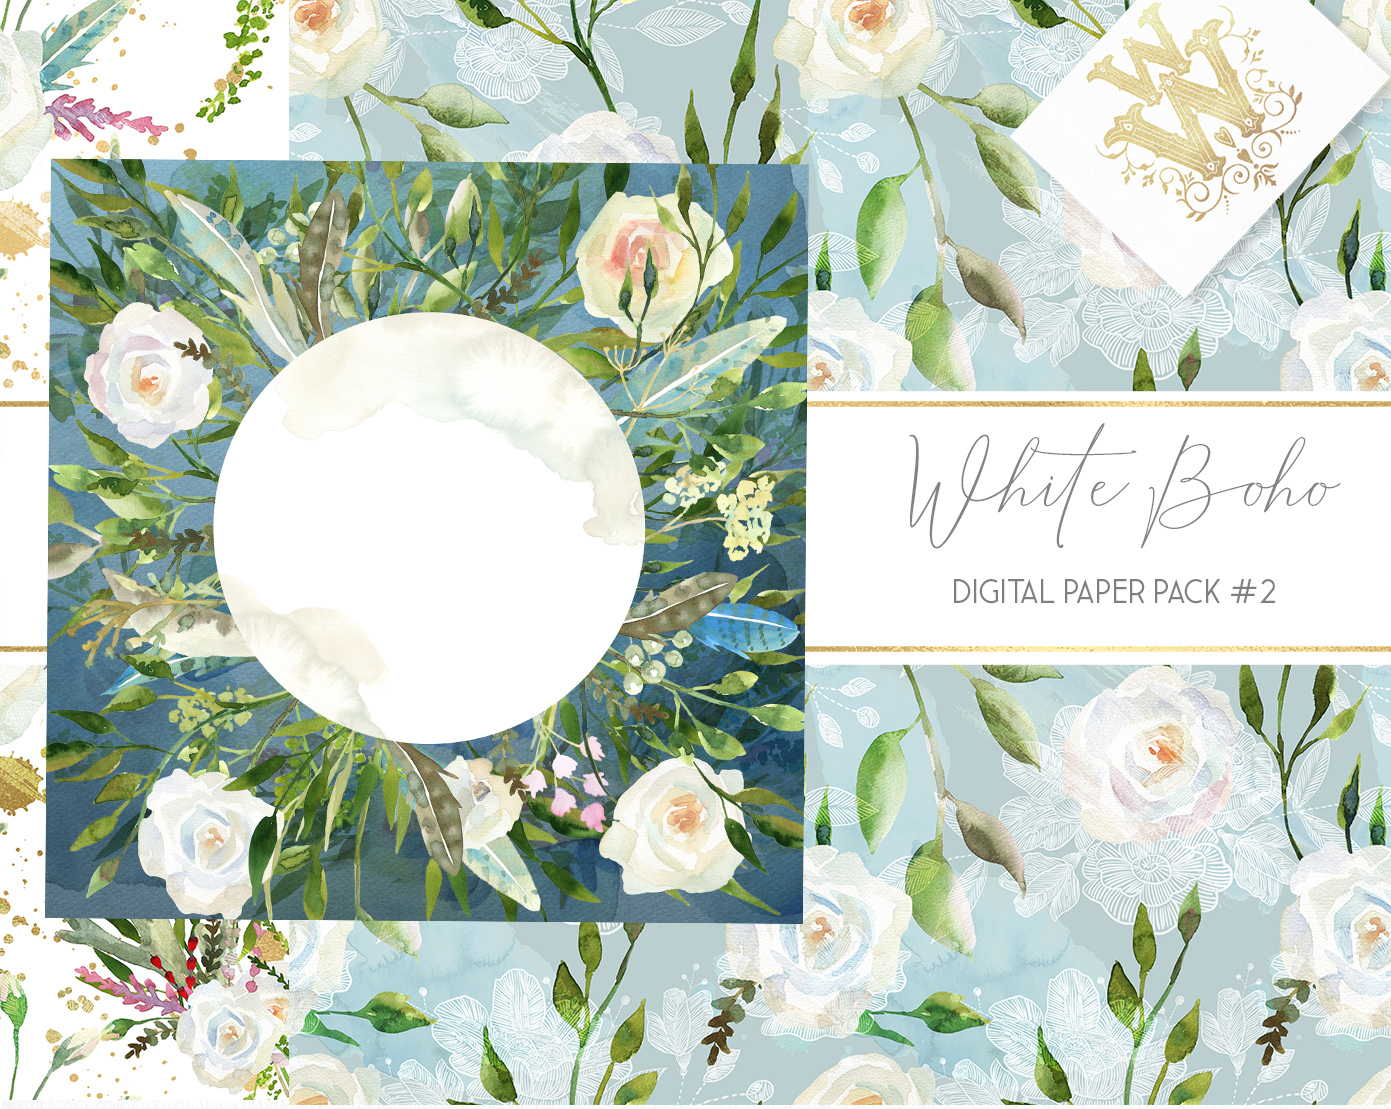 Boho chic digital paper pack, watercolor floral seamless example image 7